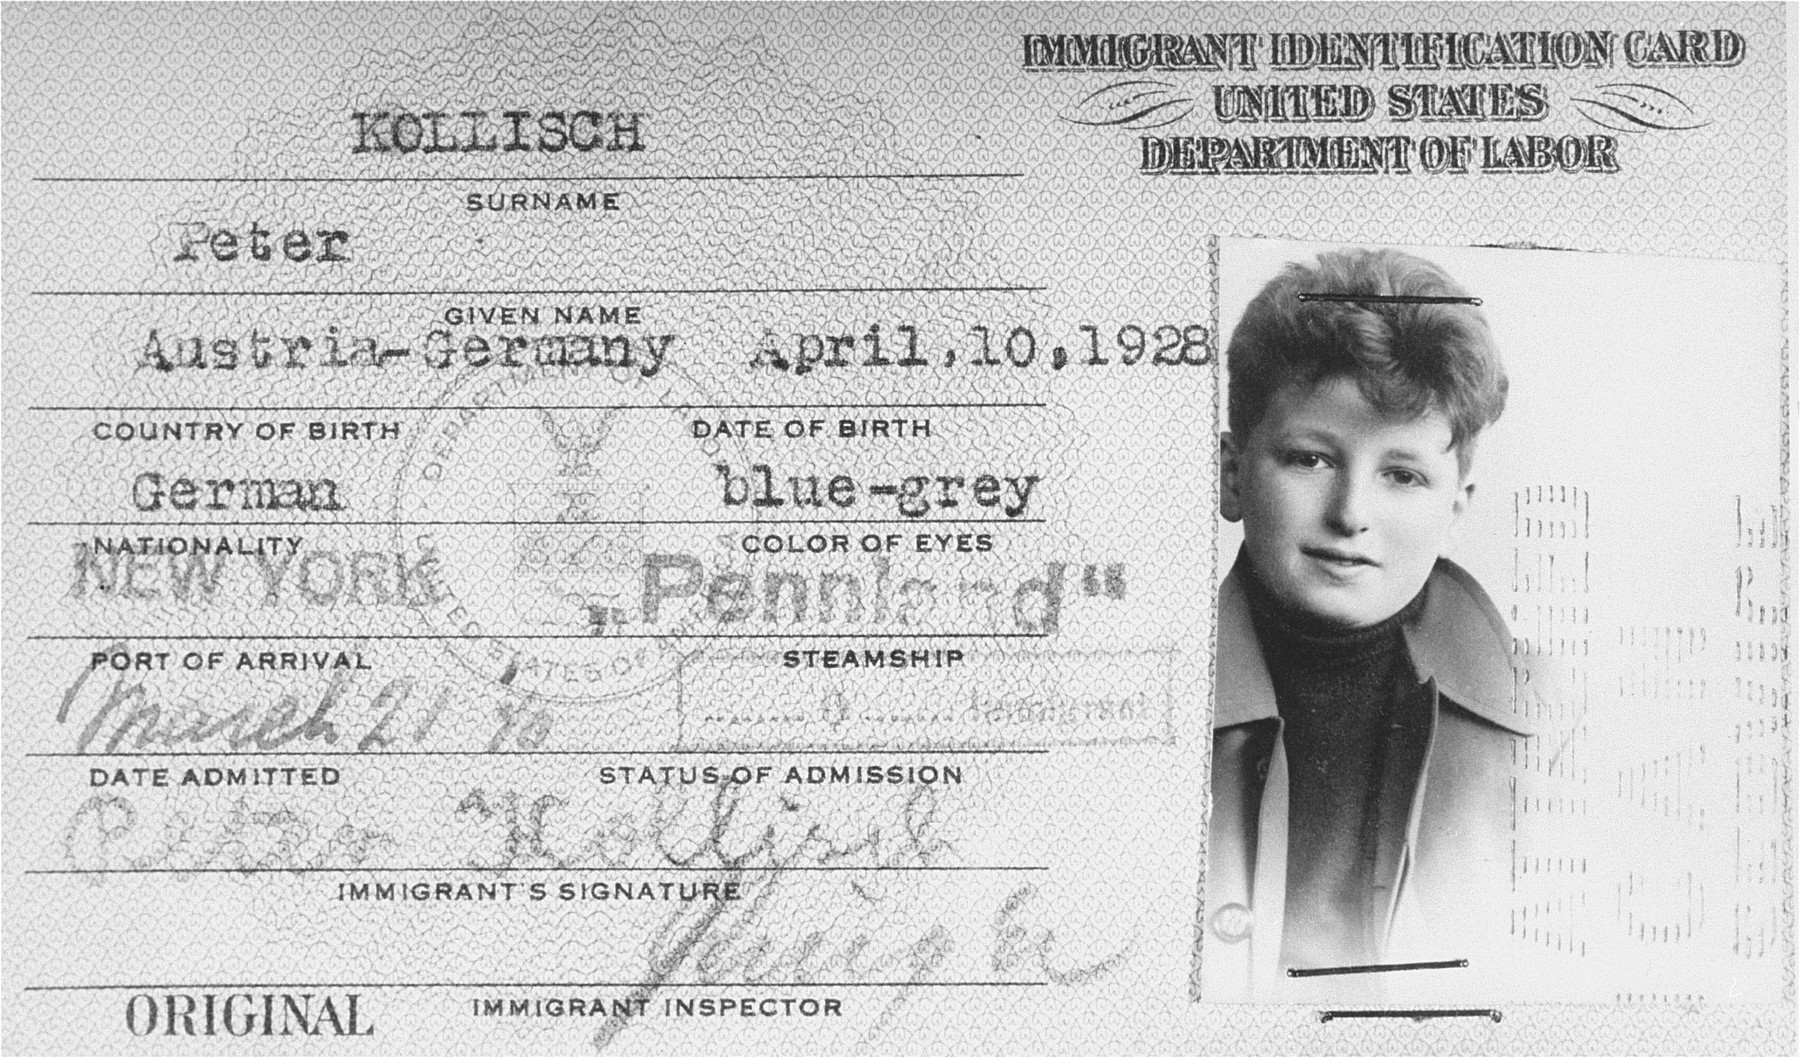 U.S. immigrant identification card issued to Jewish refugee Peter Kollisch from Vienna.